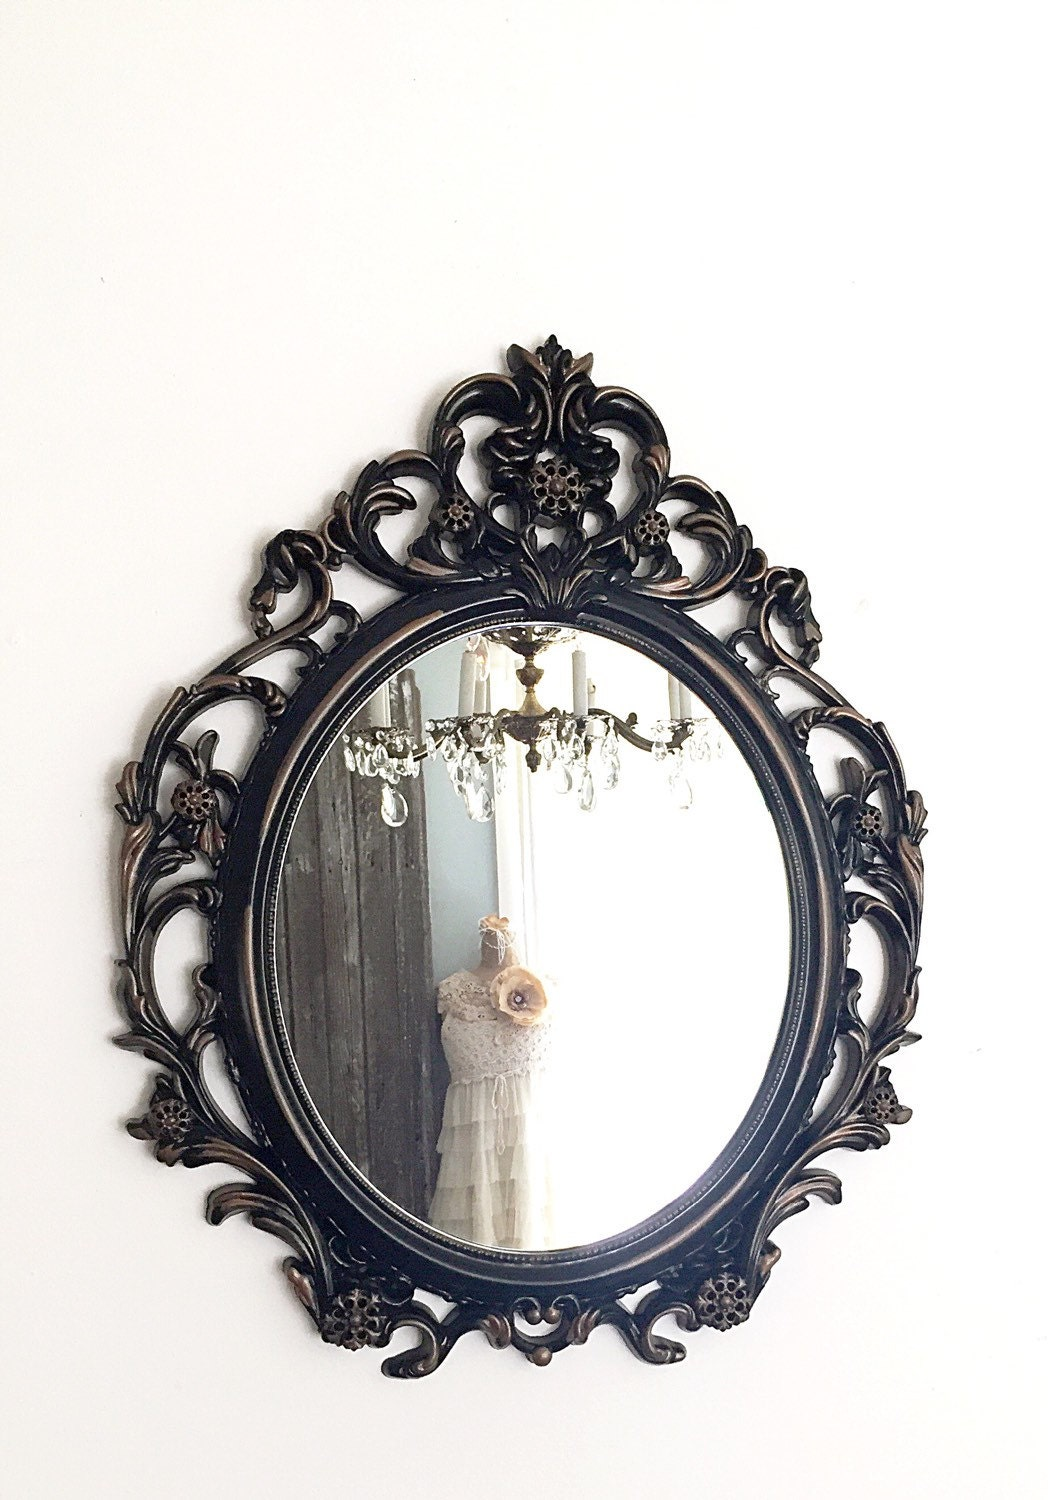 Ornement miroir baroque tenture murale miroir noir paris style for The miroir noir